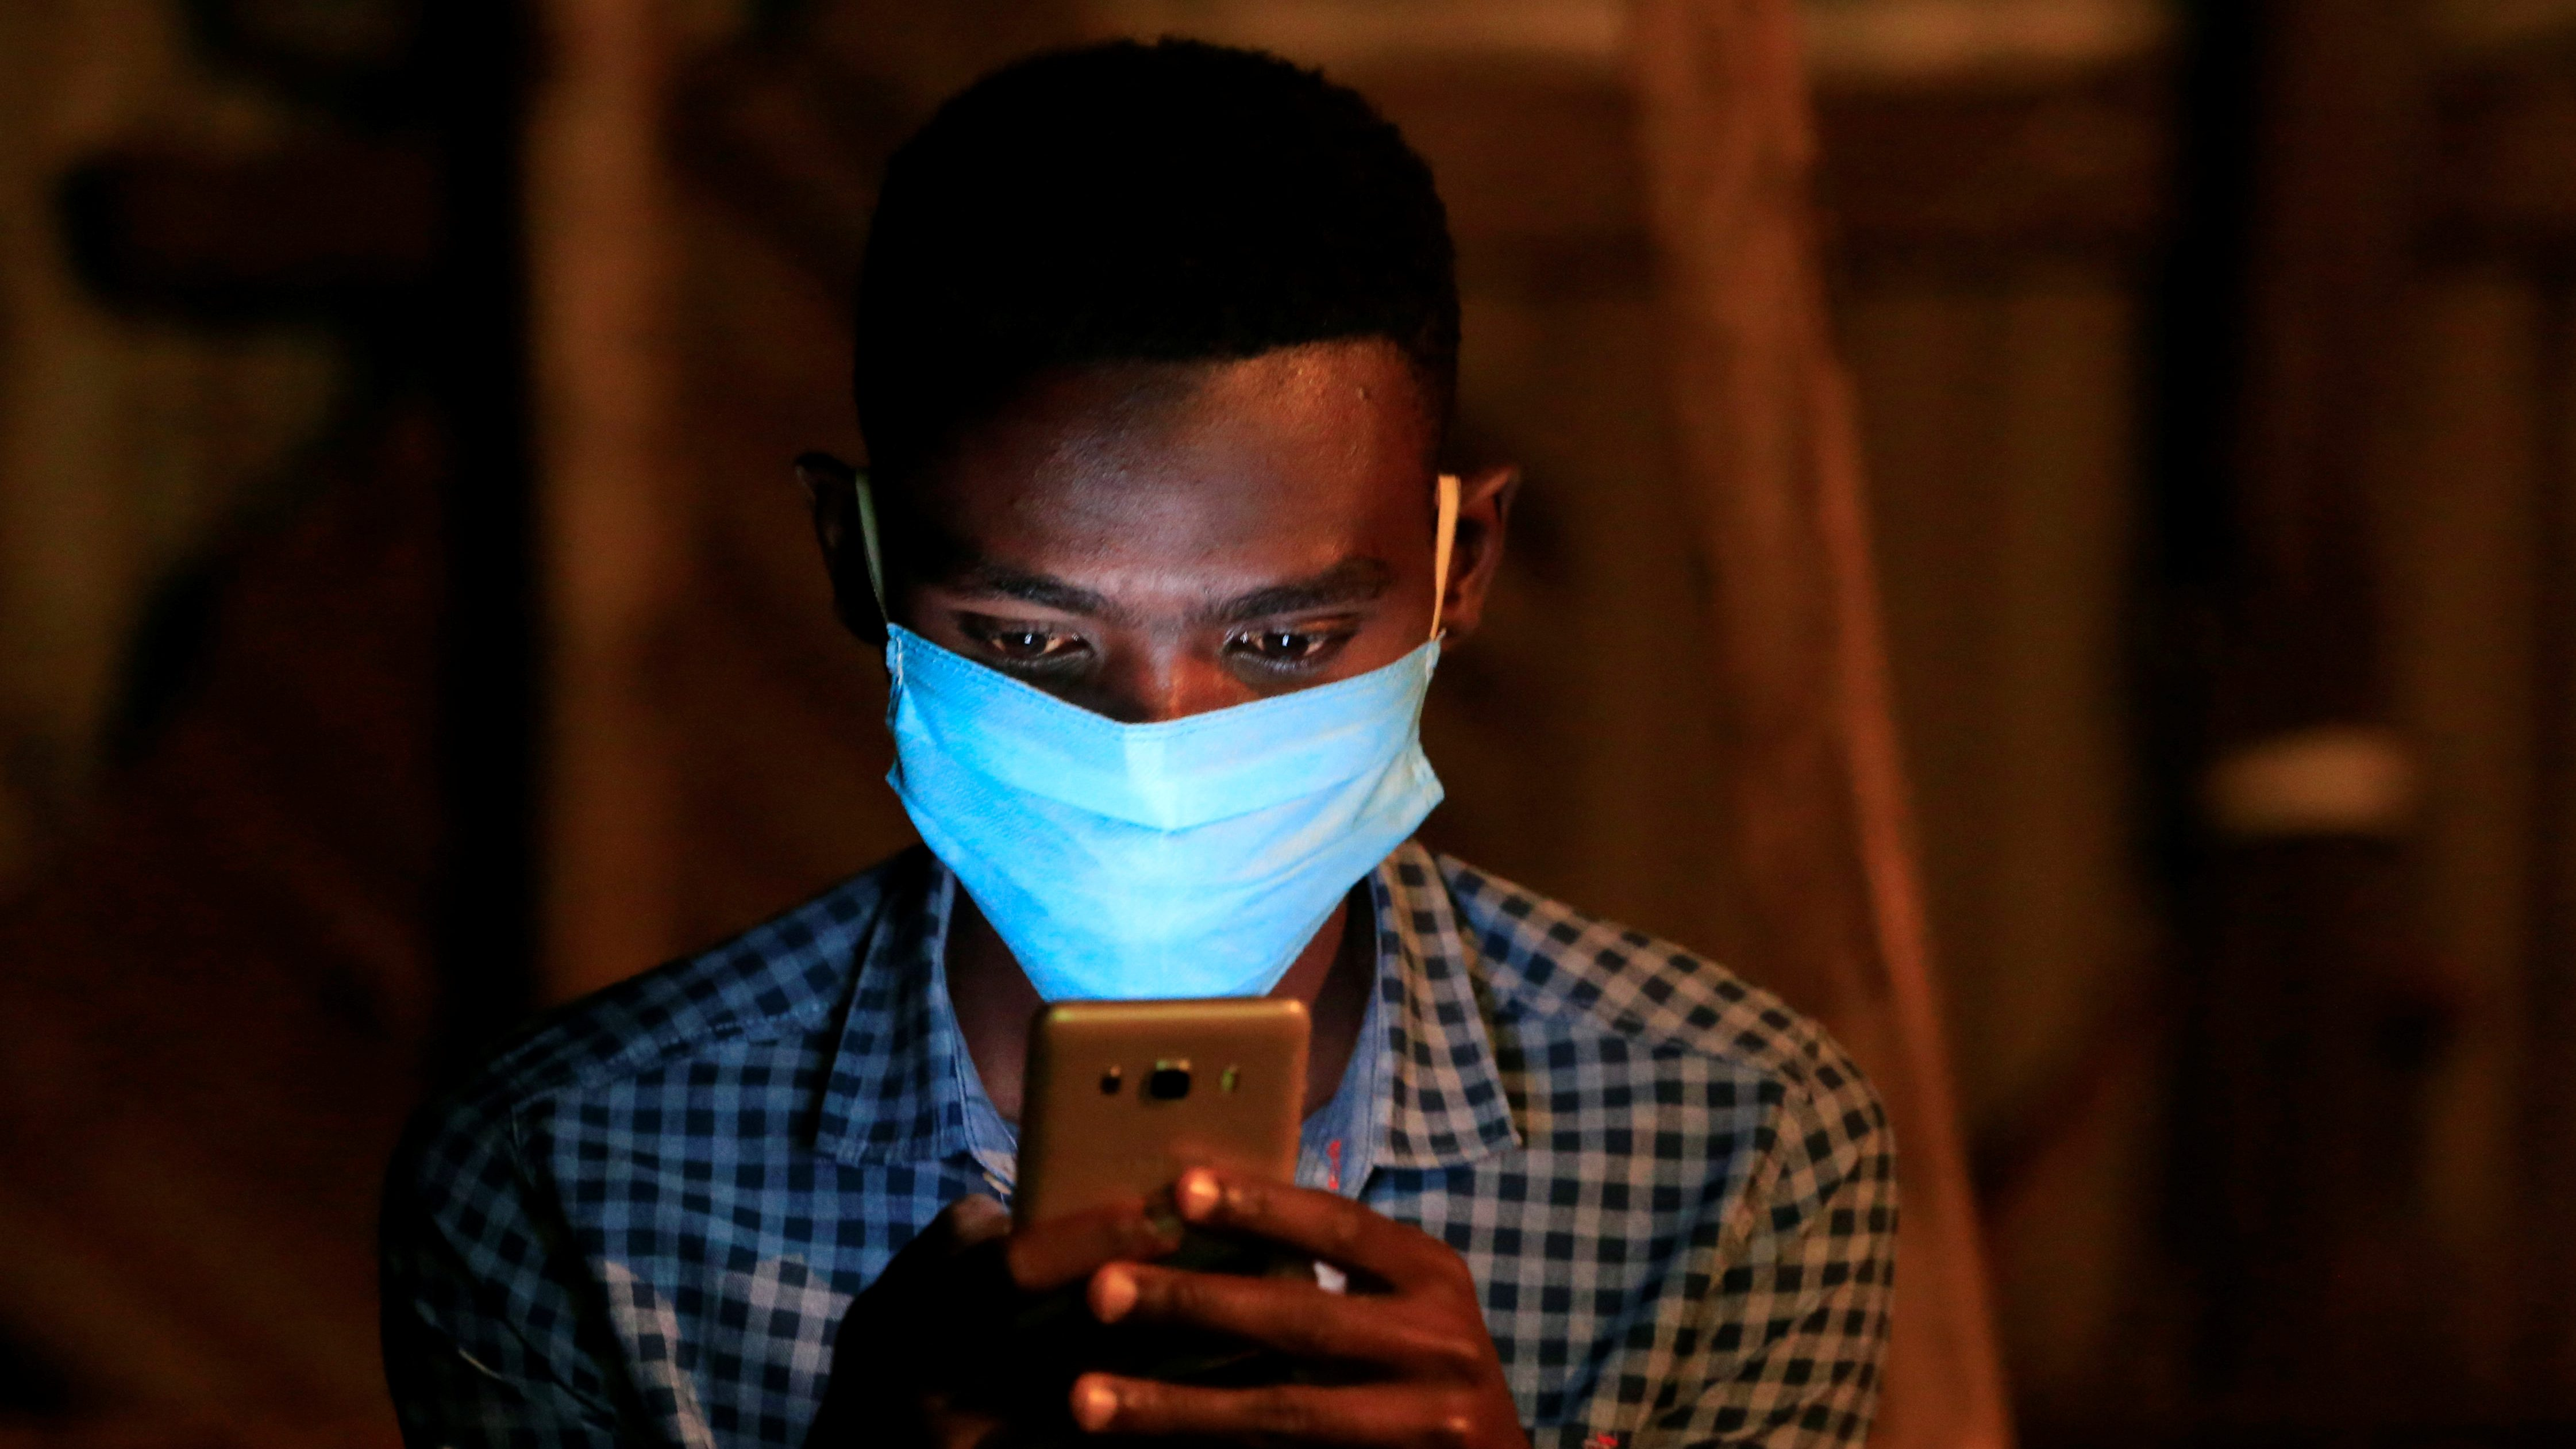 A man in a mask uses his mobile phone in a dimly lit space.